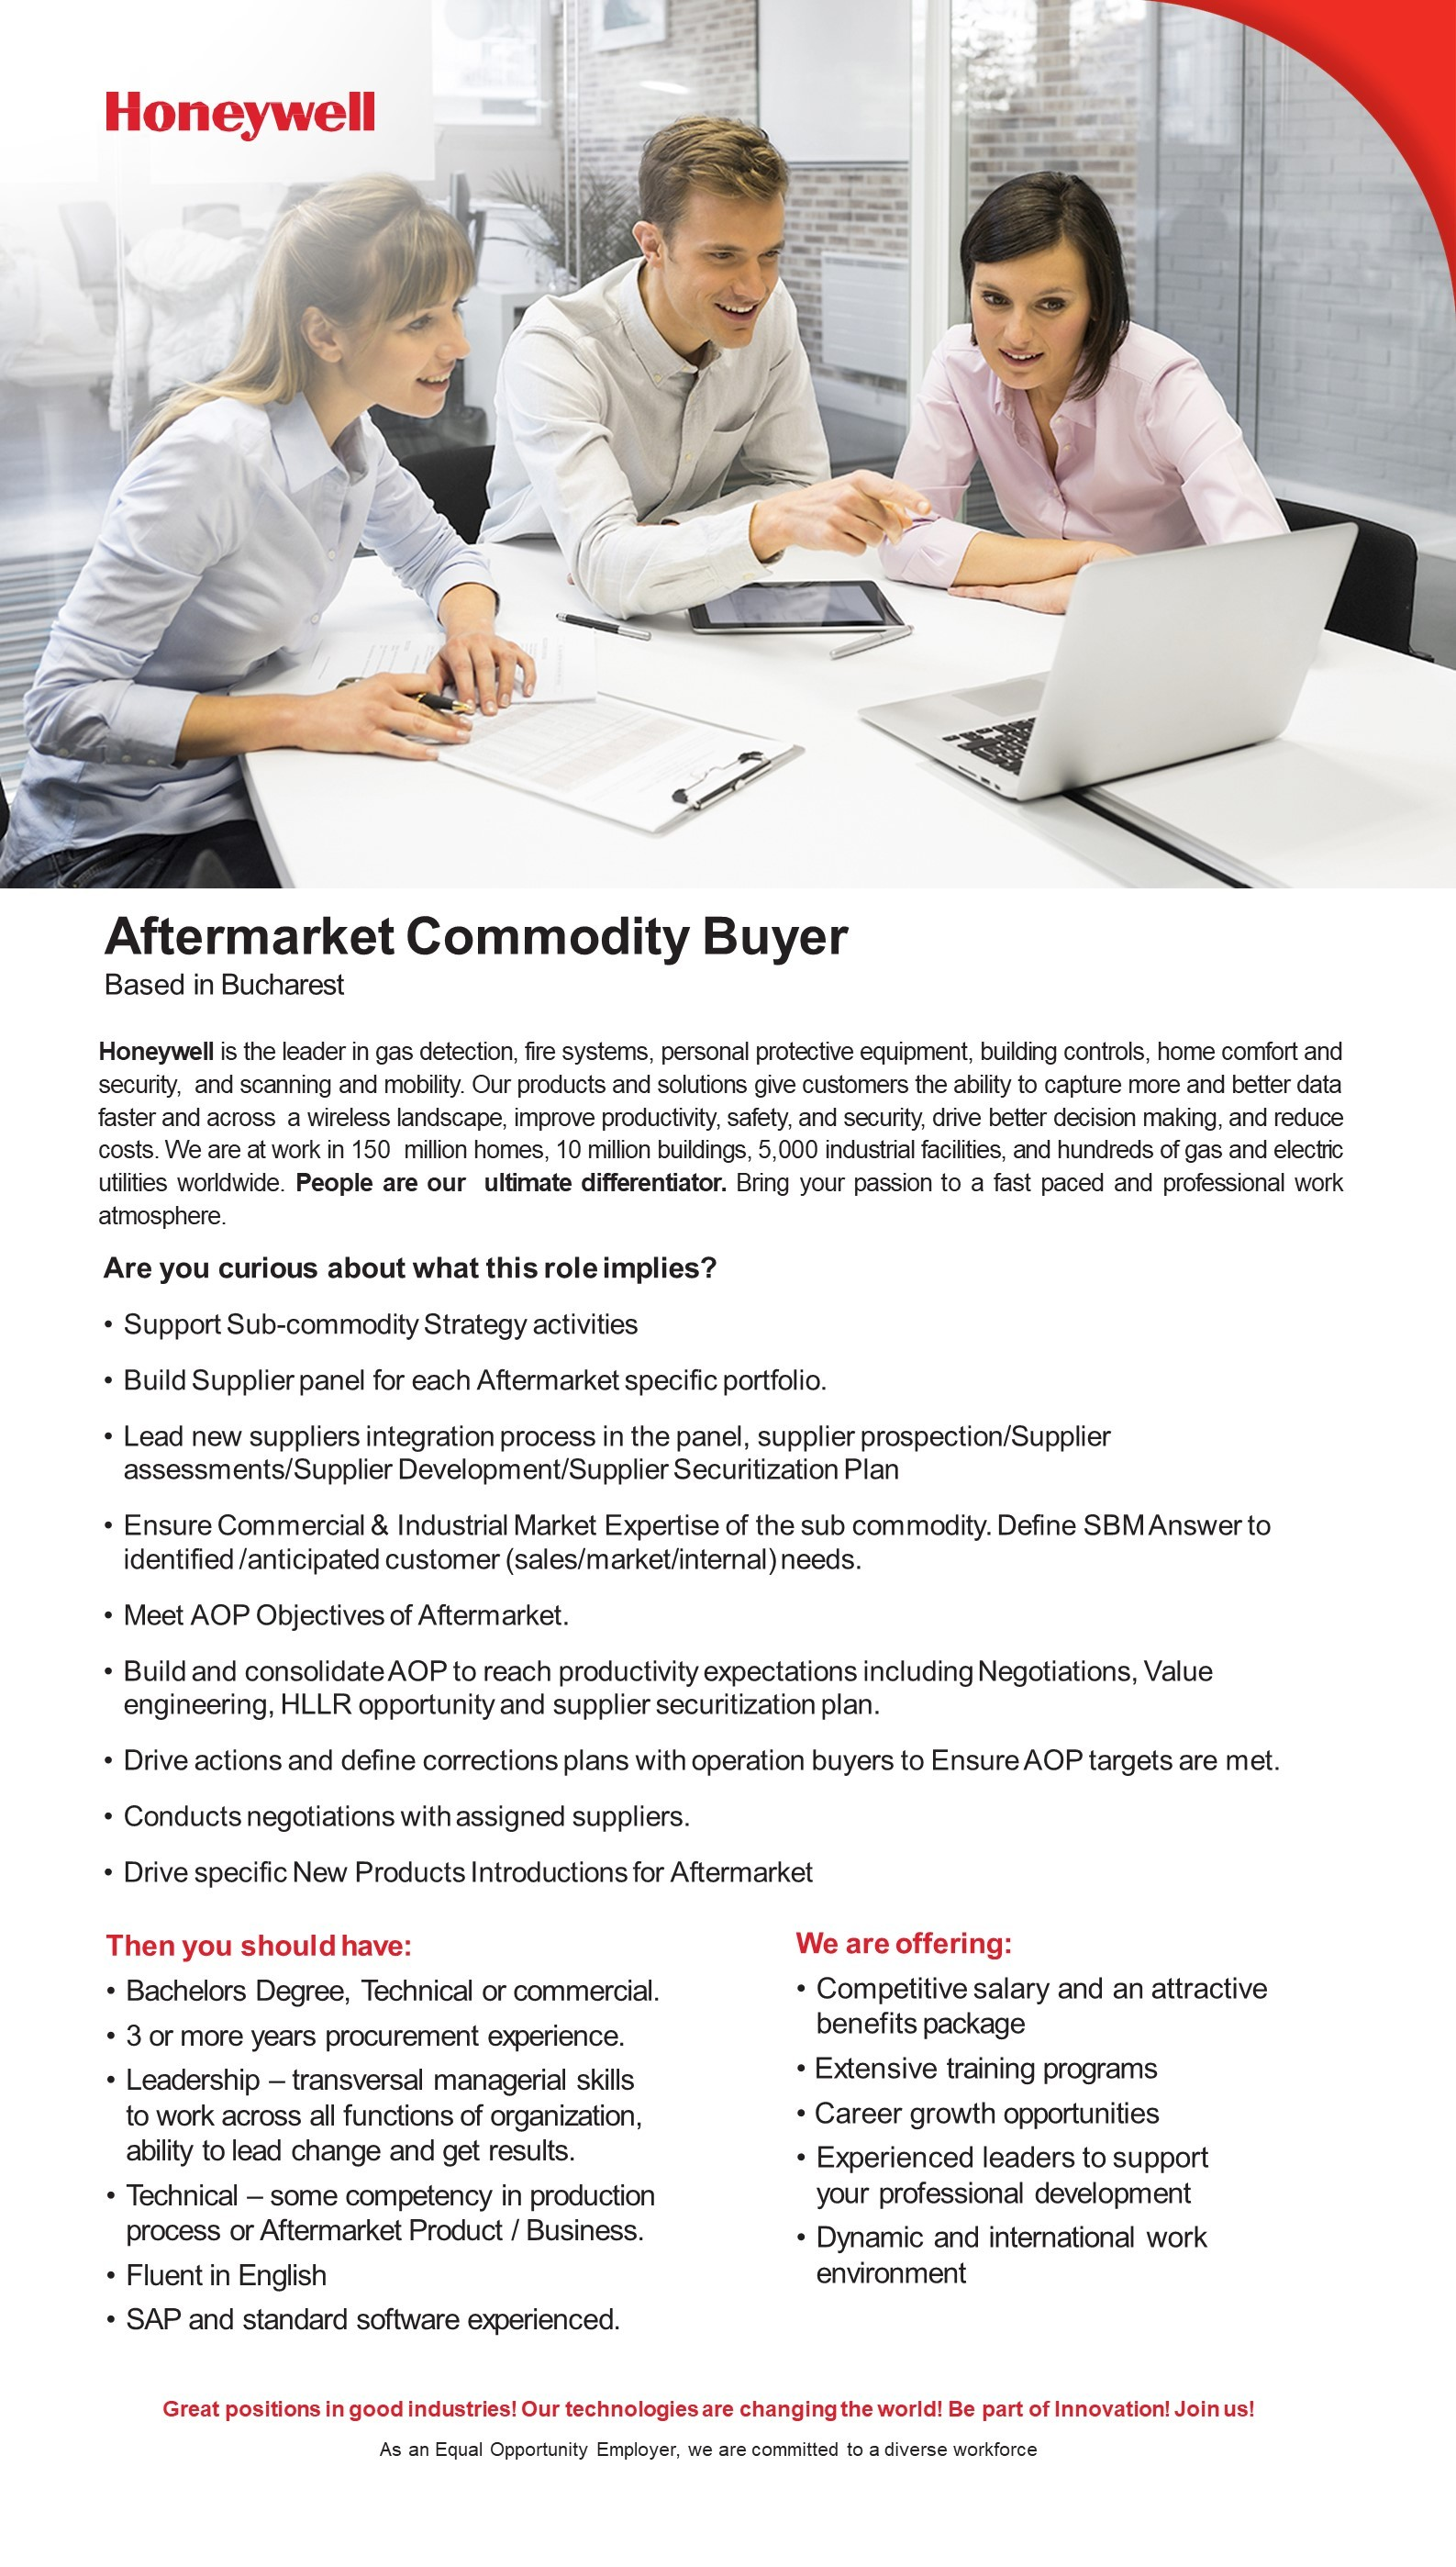 Aftermarket Commodity Buyer